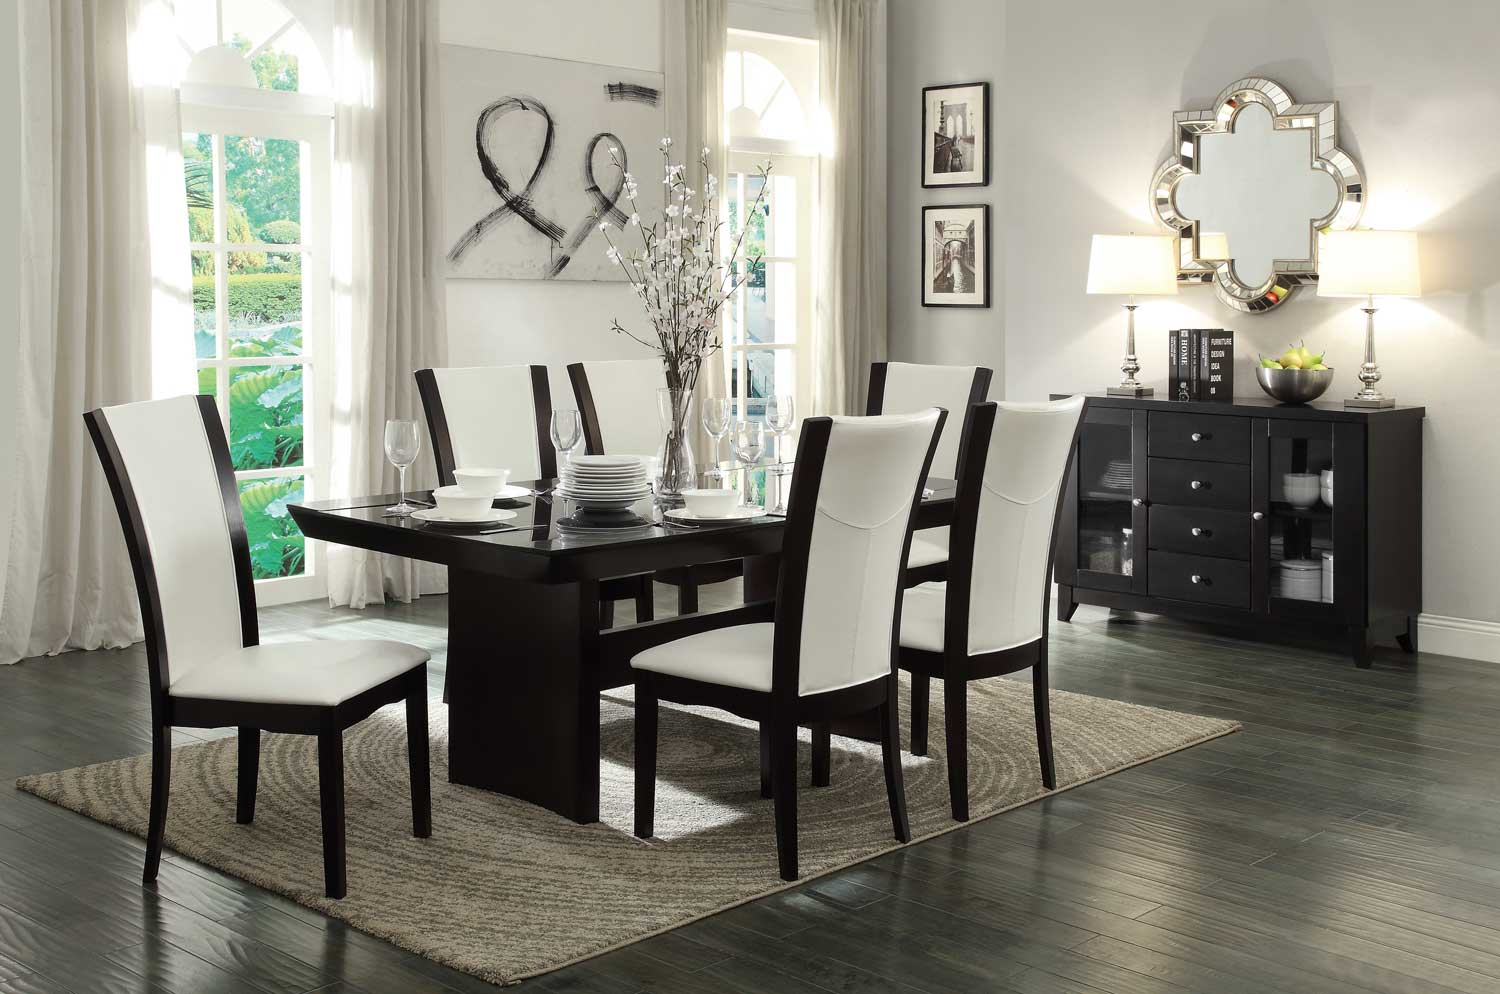 Homelegance Daisy Dining Table with Glass Insert Collection